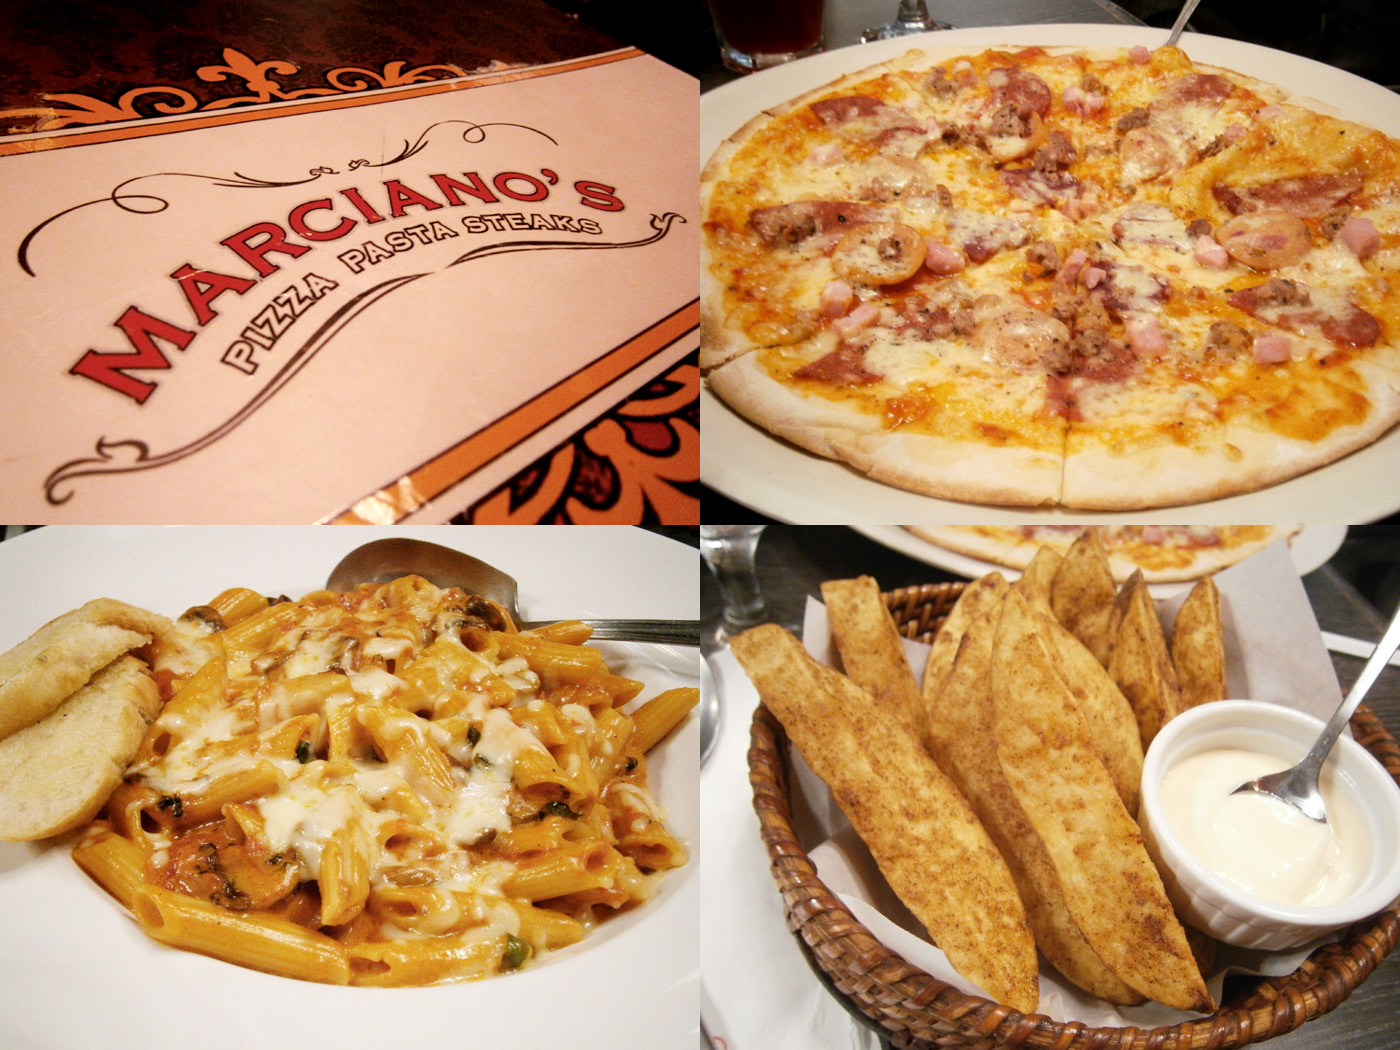 Meatlover's pizza, Legally Blonde pasta and my favorite potato wedges - Marciano's Greenbelt 3